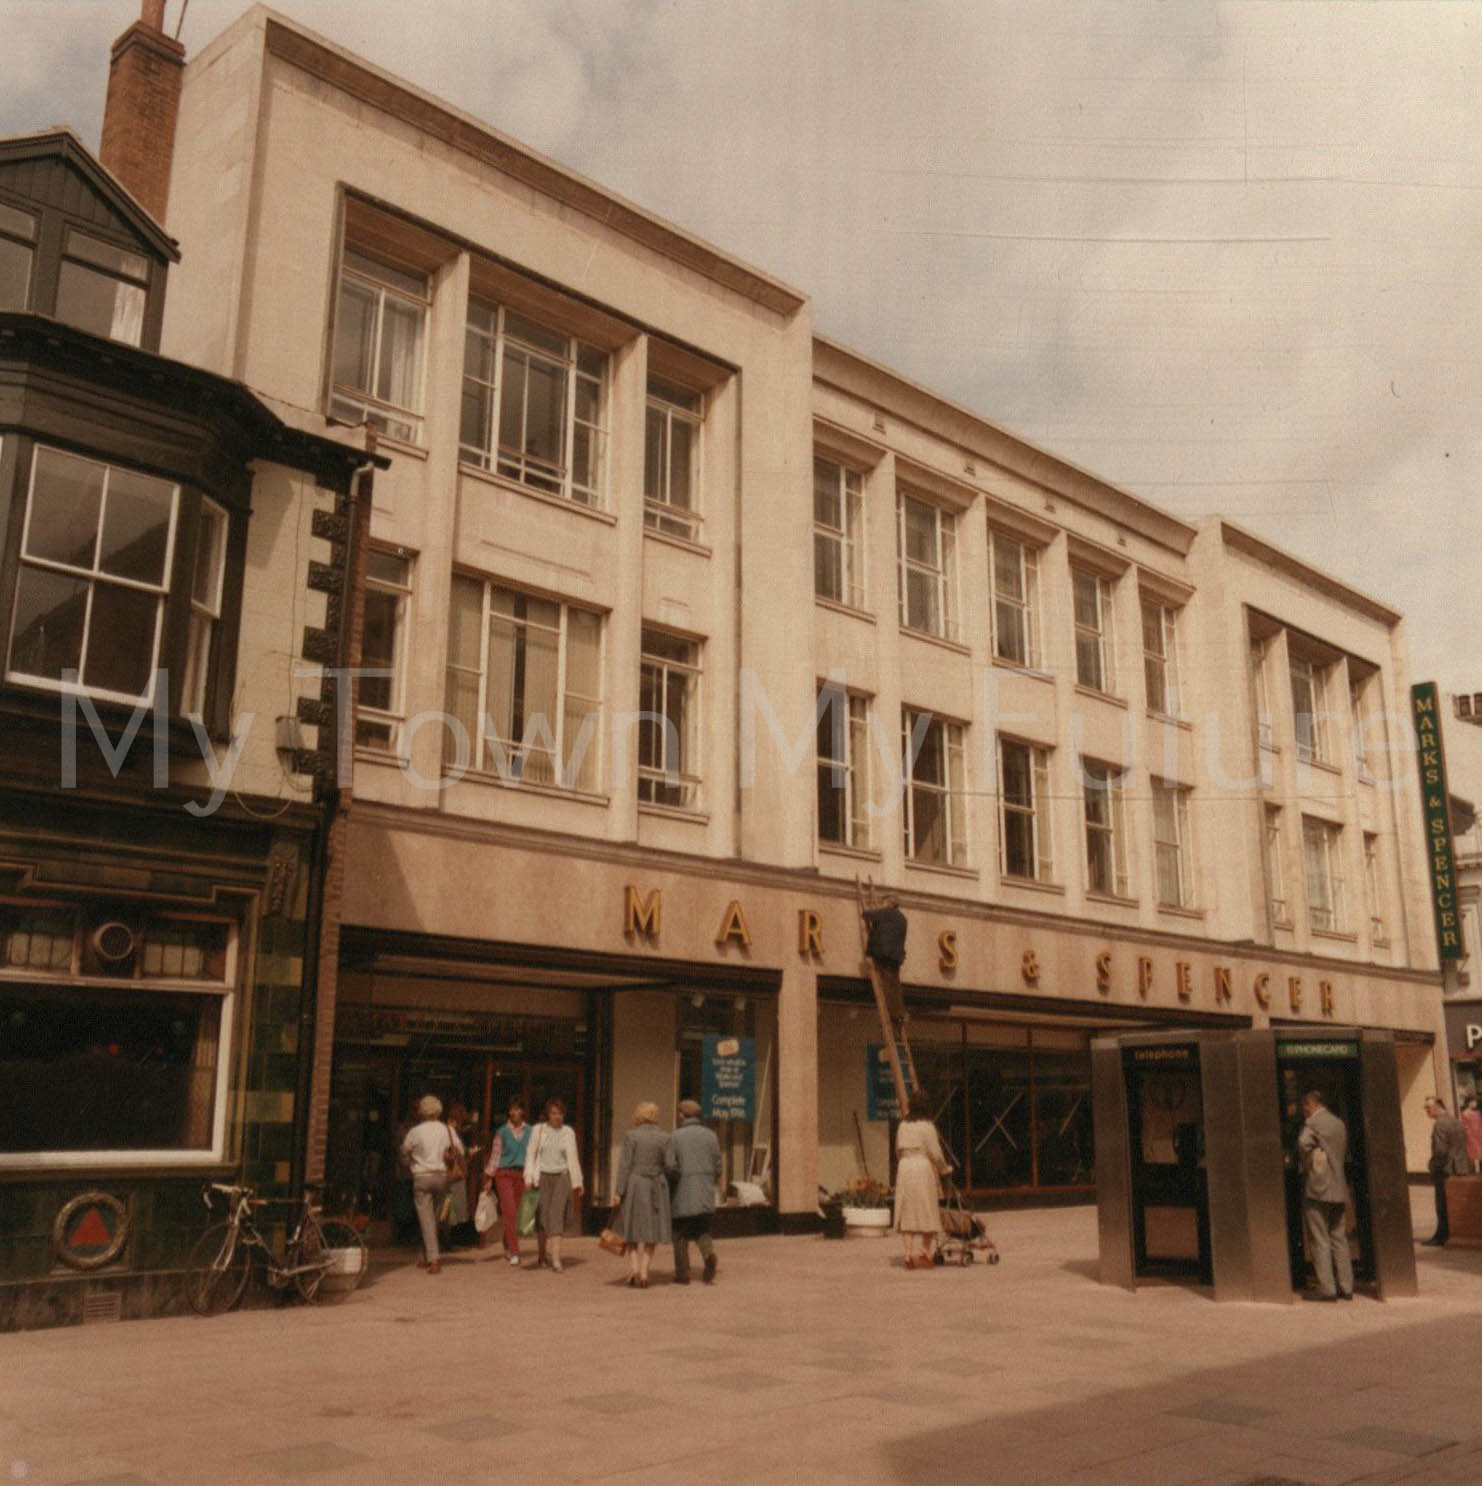 Linthorpe Road Shops